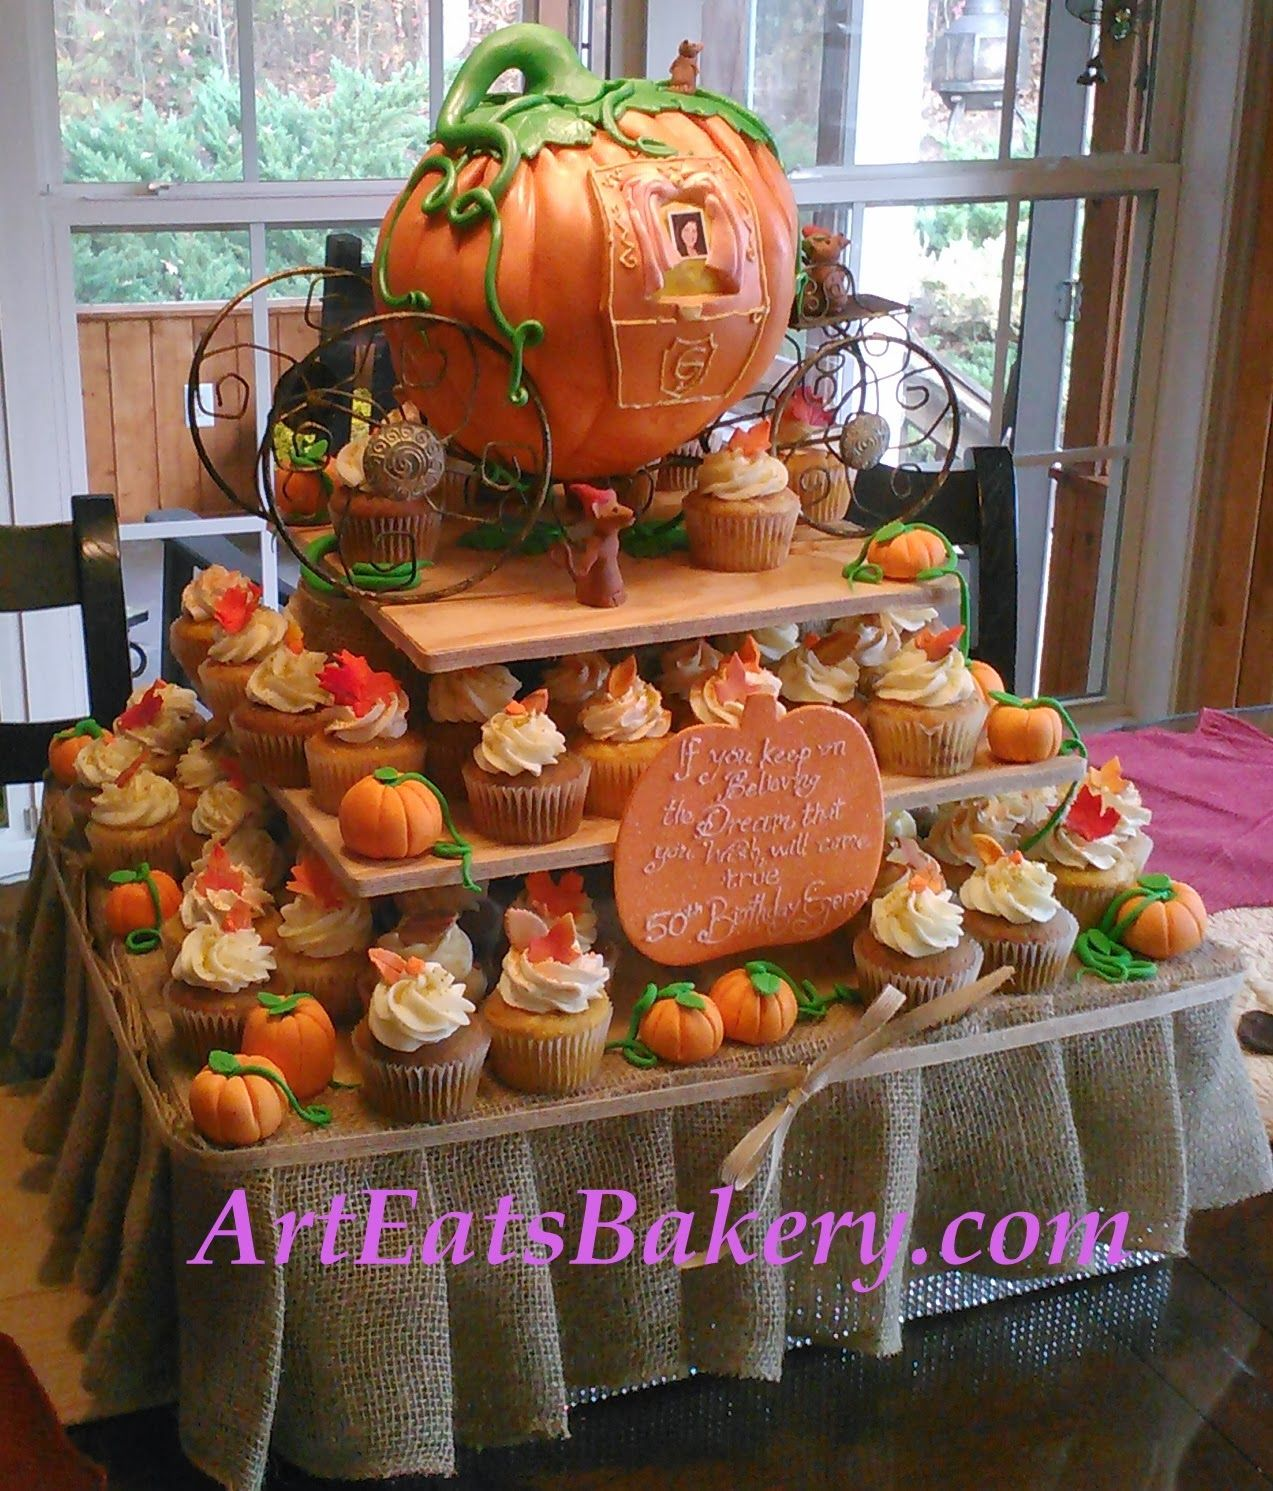 clombiaartcake Cinderella pumpkin carriage princess 50th